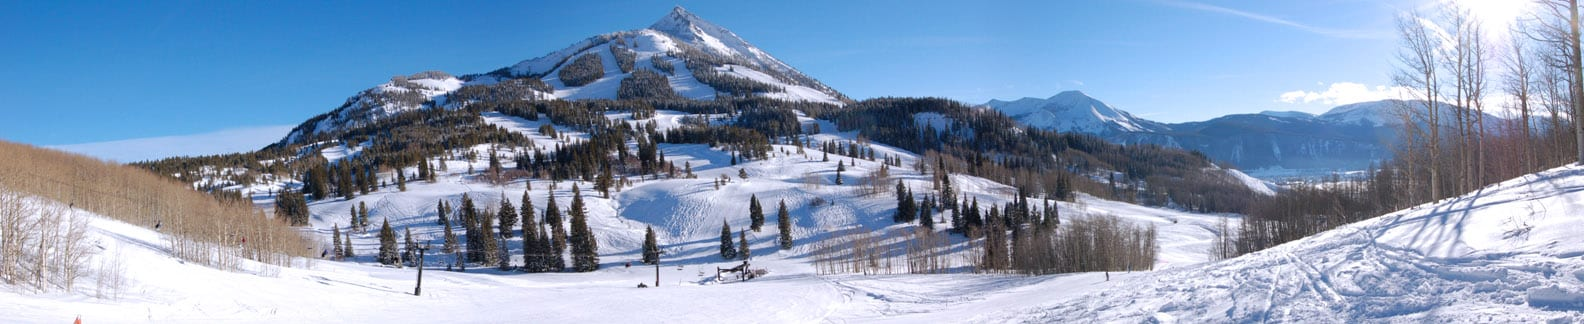 Crested Butte Mountain Resort Panorama